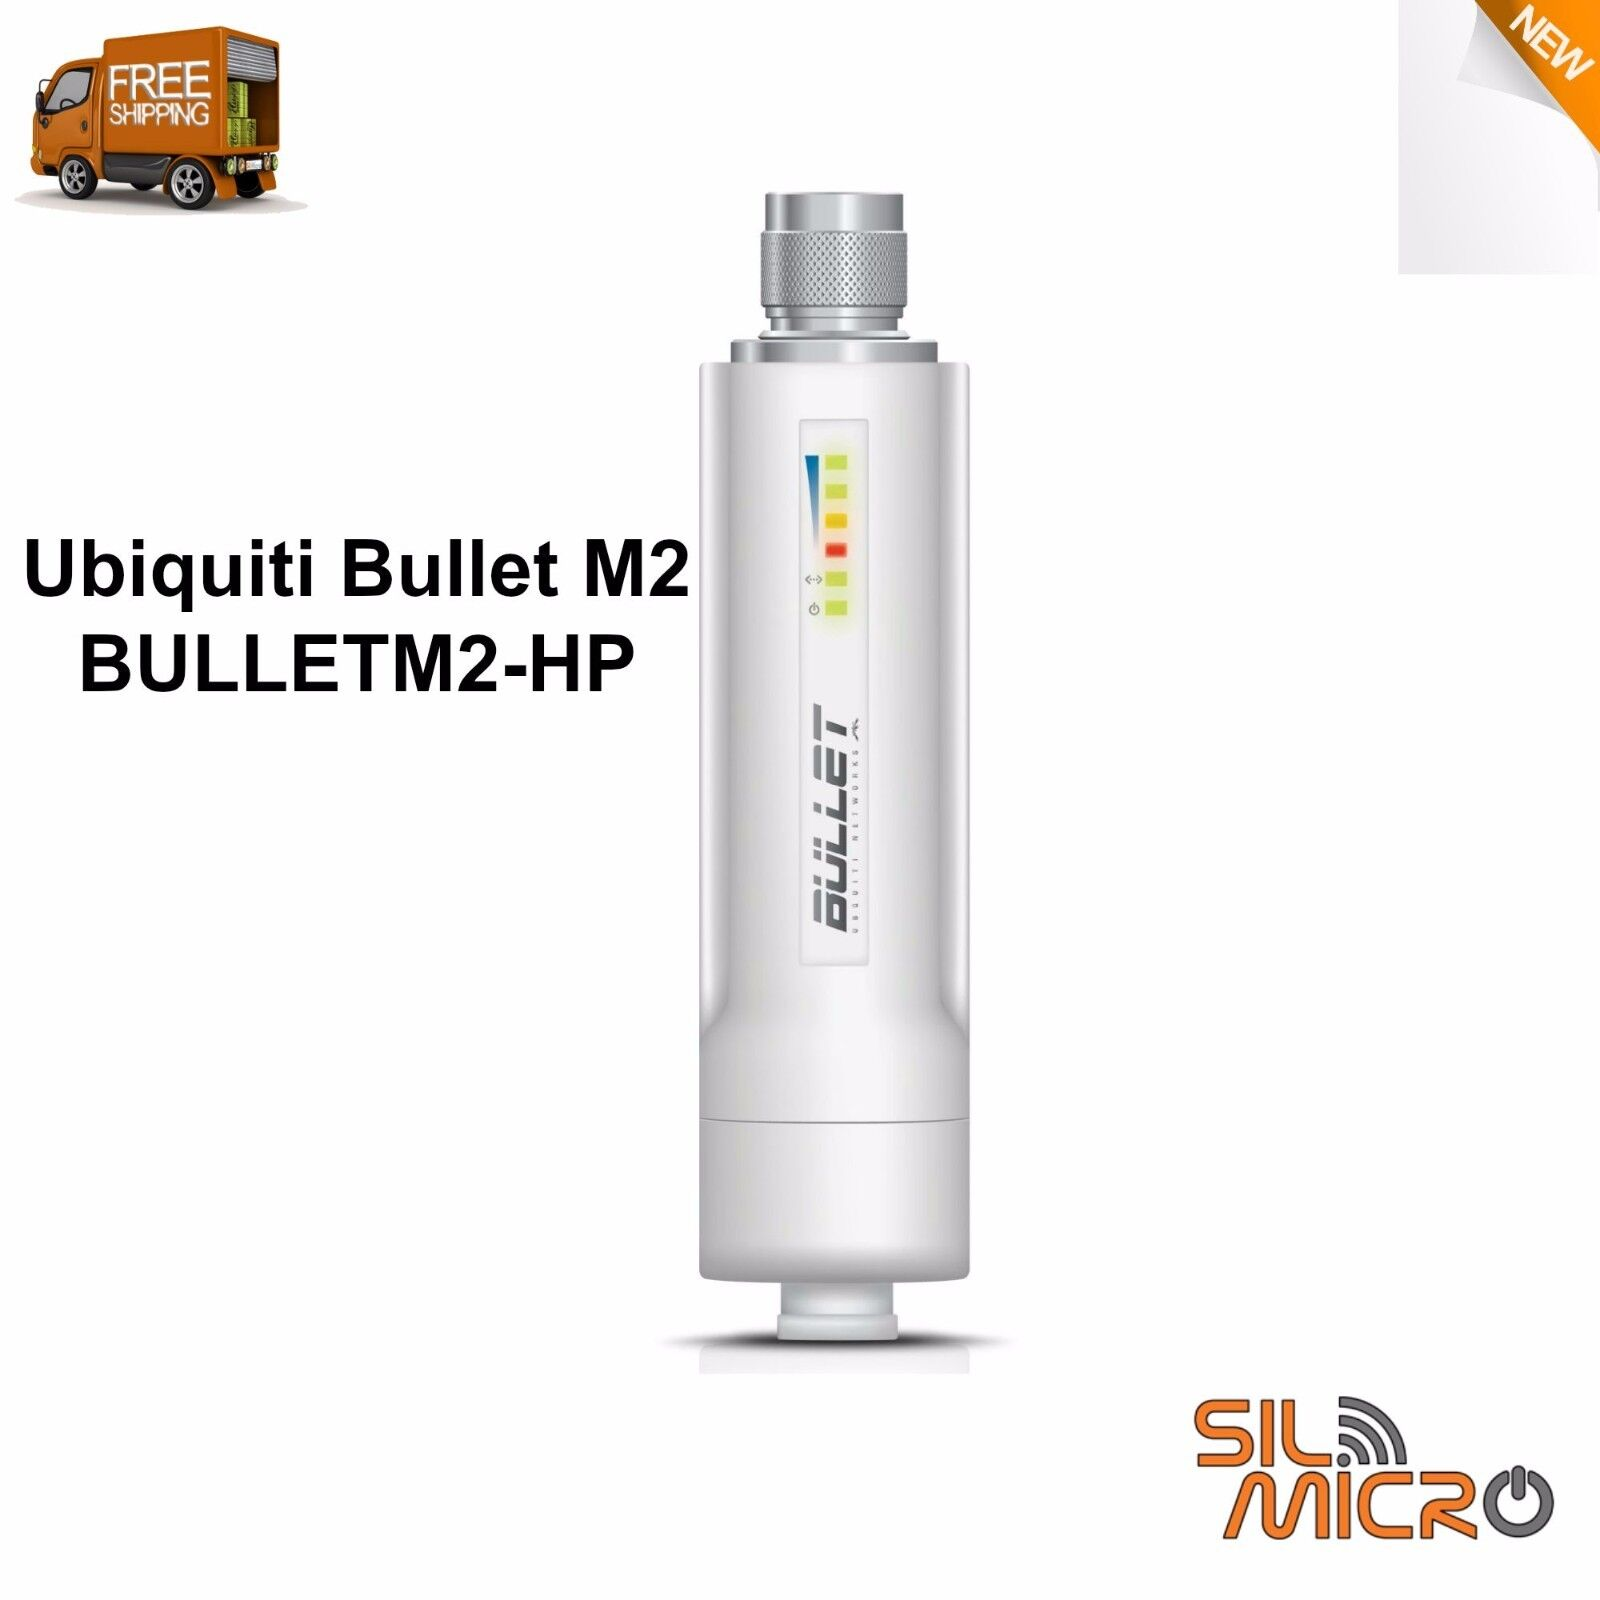 Ubiquiti Bullet Ieee 802.11n 100 Mbps Wireless Bridge - I...